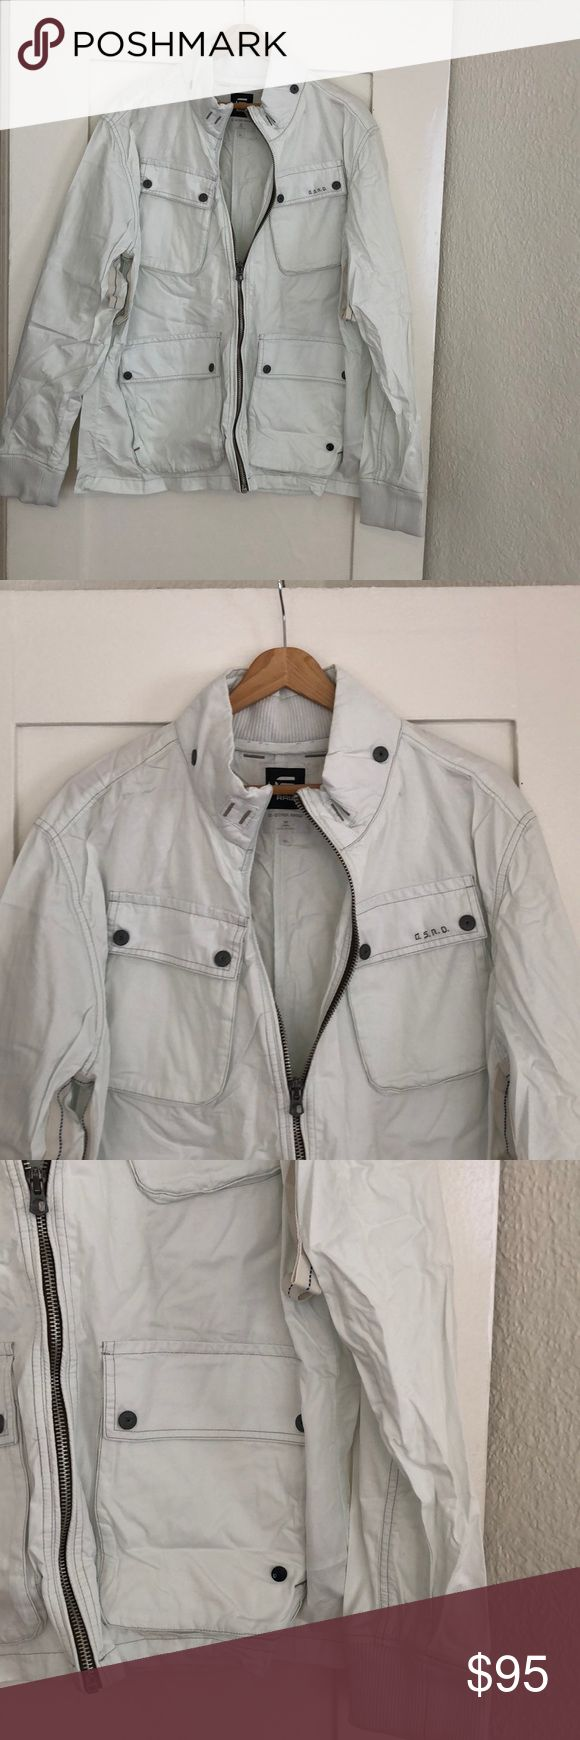 "G-STAR RAW Utility Jacket NWOT G-STAR Jacket. Fits & feels like a windbreaker.   Sleeves from top of shoulder to hem = 28"" Armpit to armpit while zipped = 22"" G-Star Jackets & Coats Military & Field"